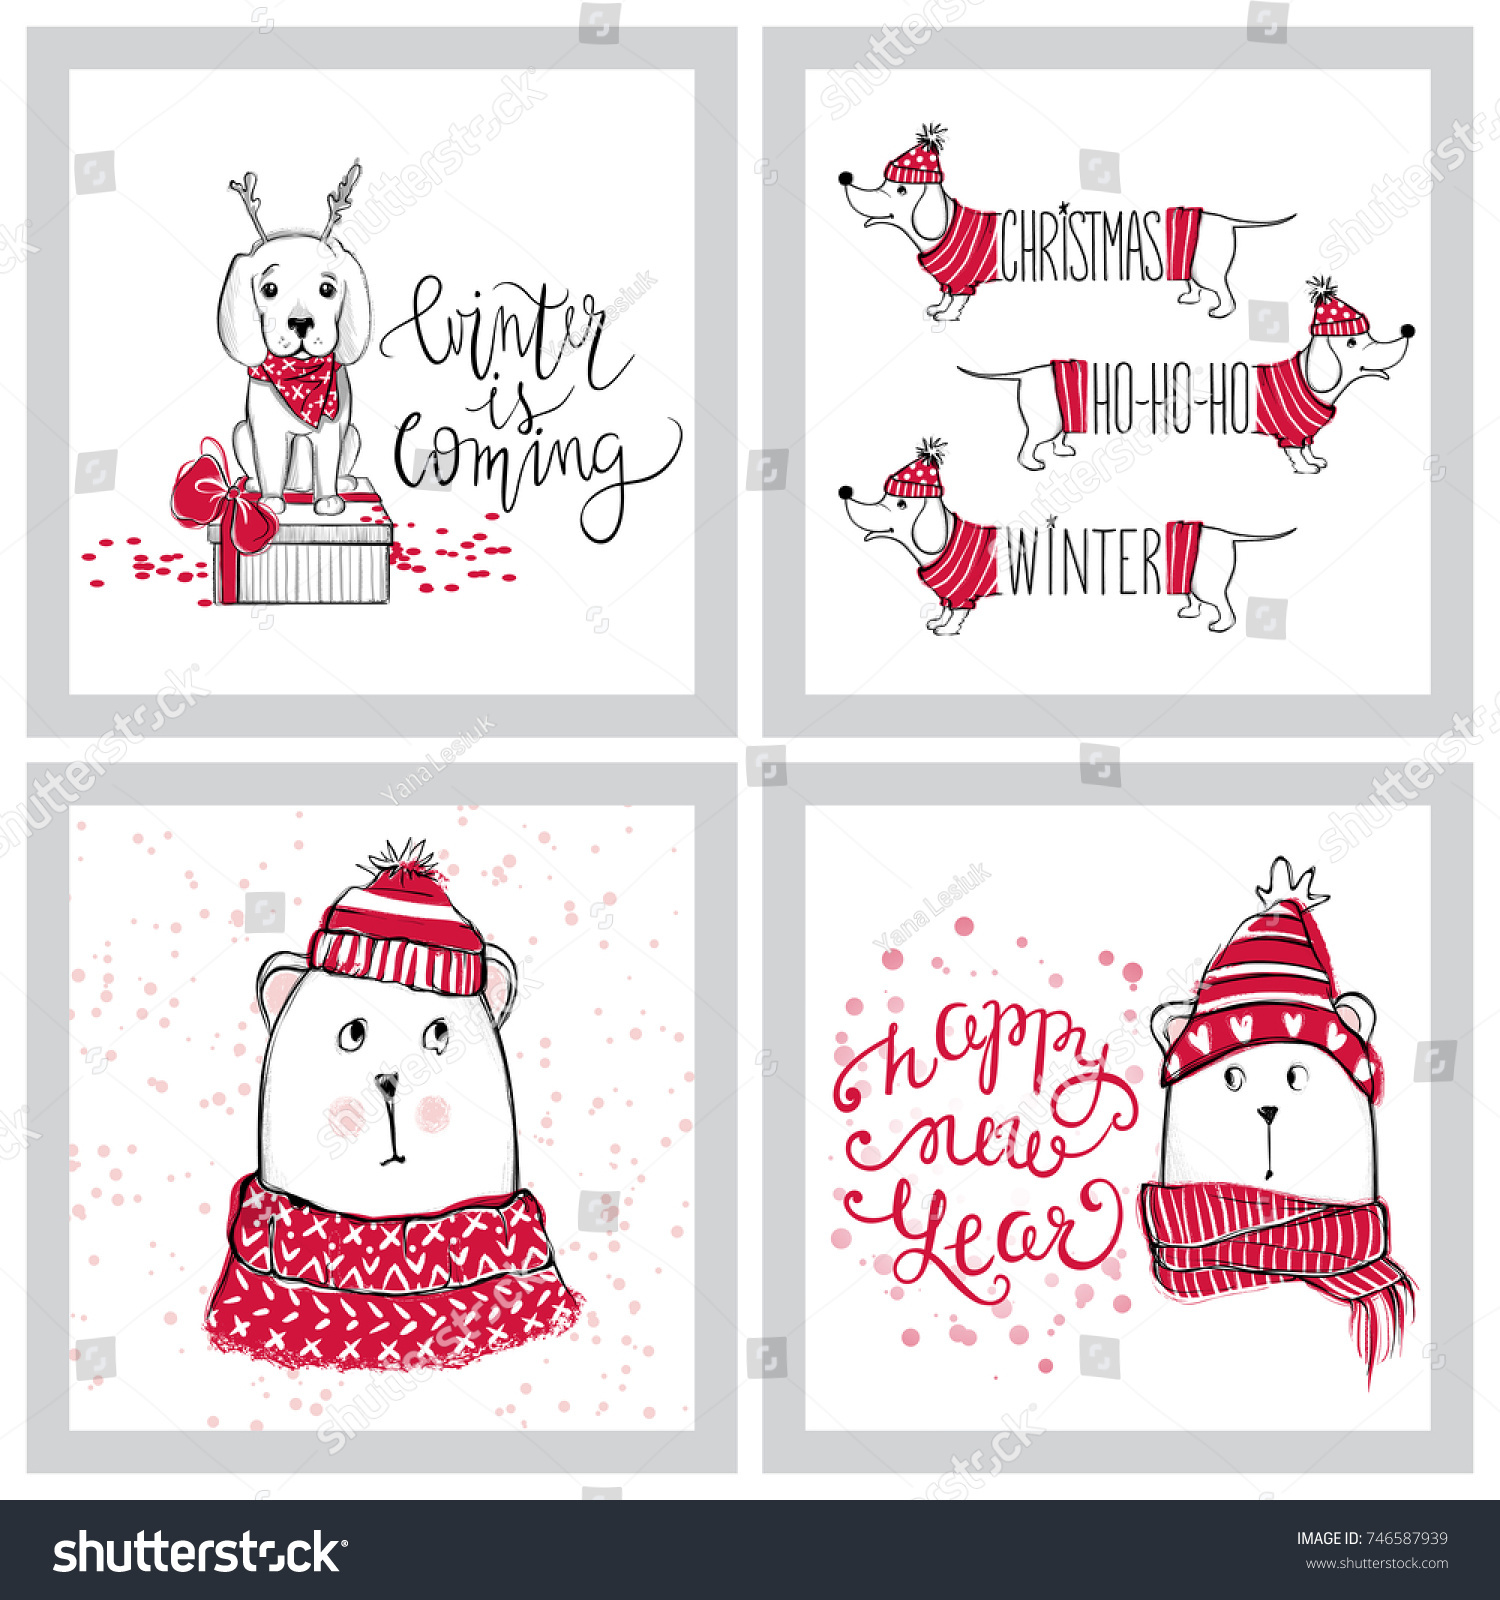 Merry Christmas 2018 Collection Cute Greeting Stock Vector (Royalty ...